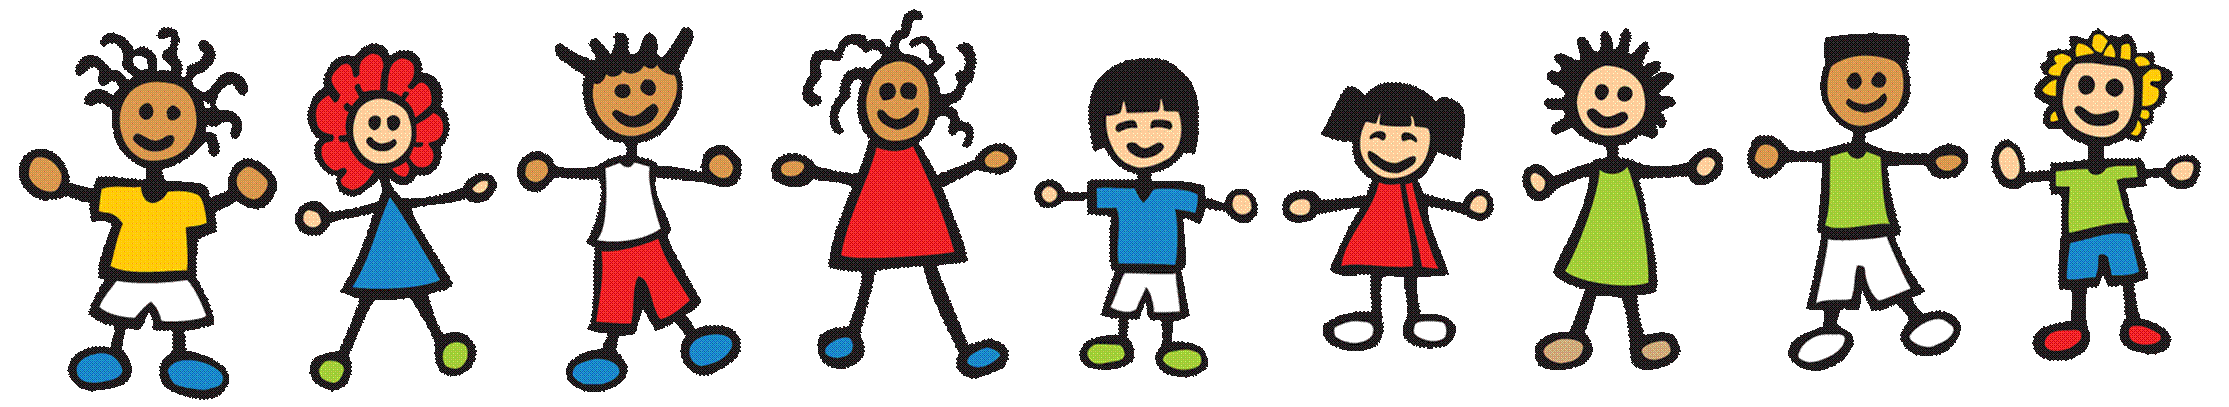 Special Education Clip Art Free-Special Education Clip Art Free-6